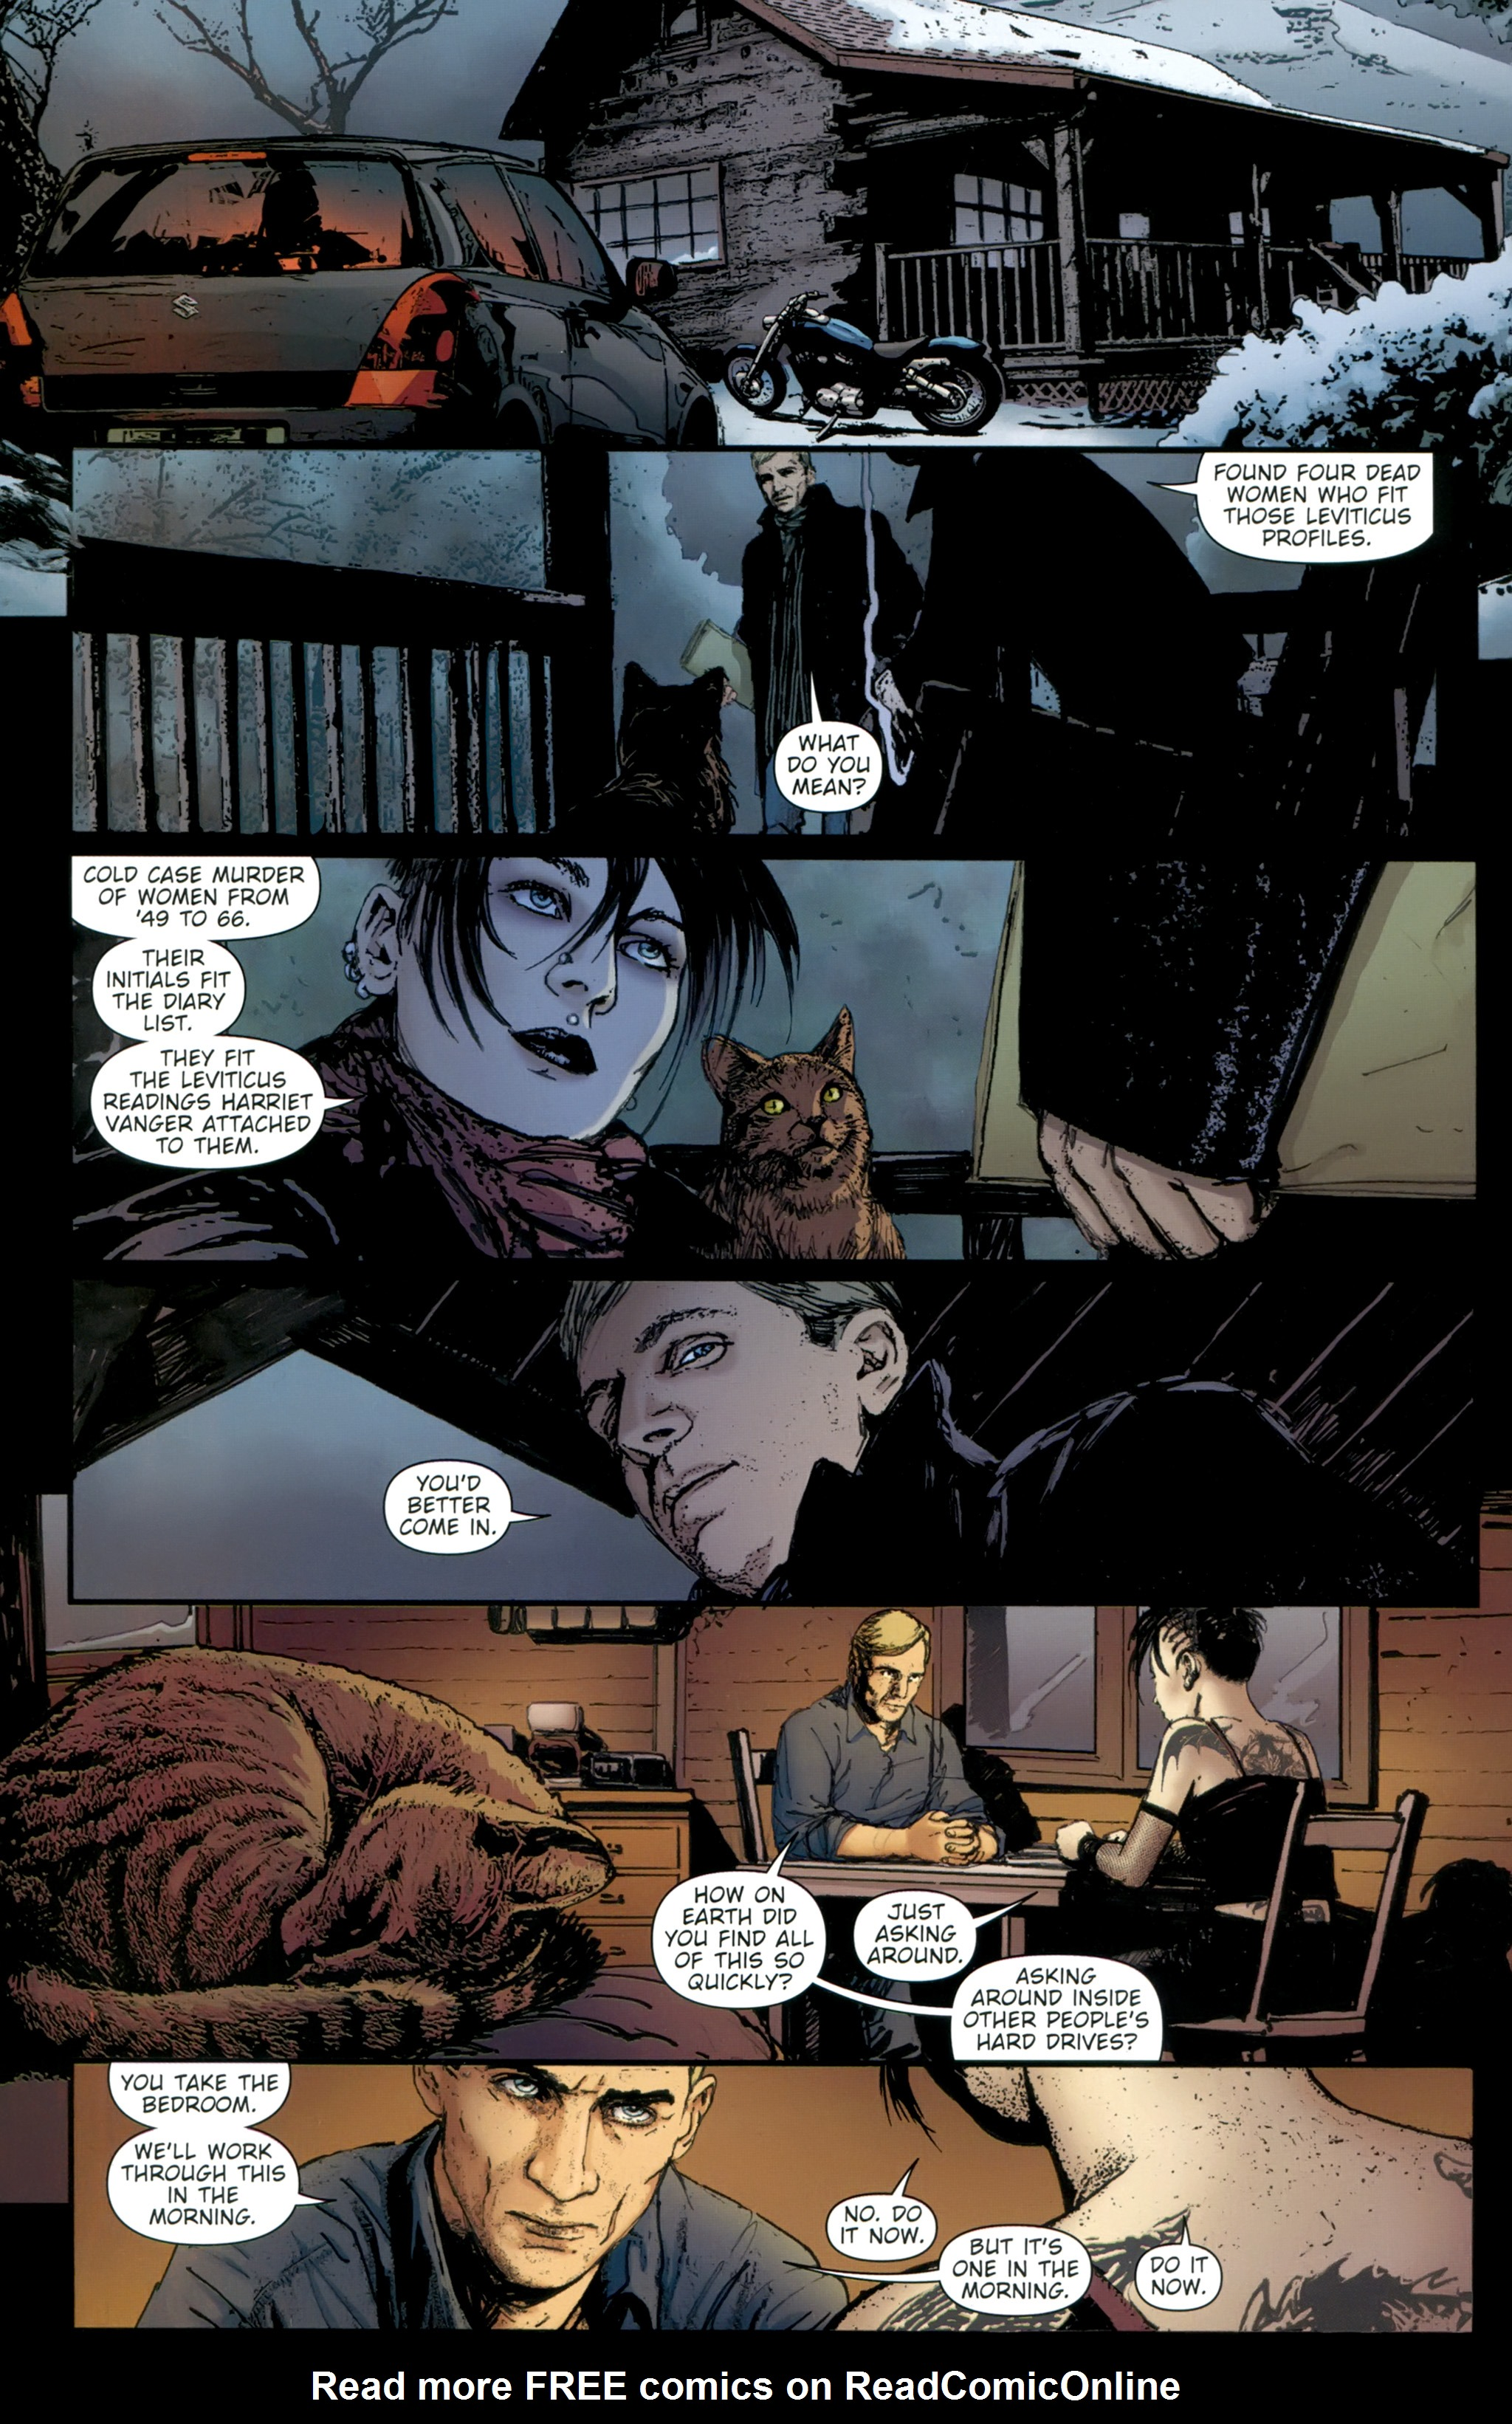 Read online The Girl With the Dragon Tattoo comic -  Issue # TPB 2 - 62